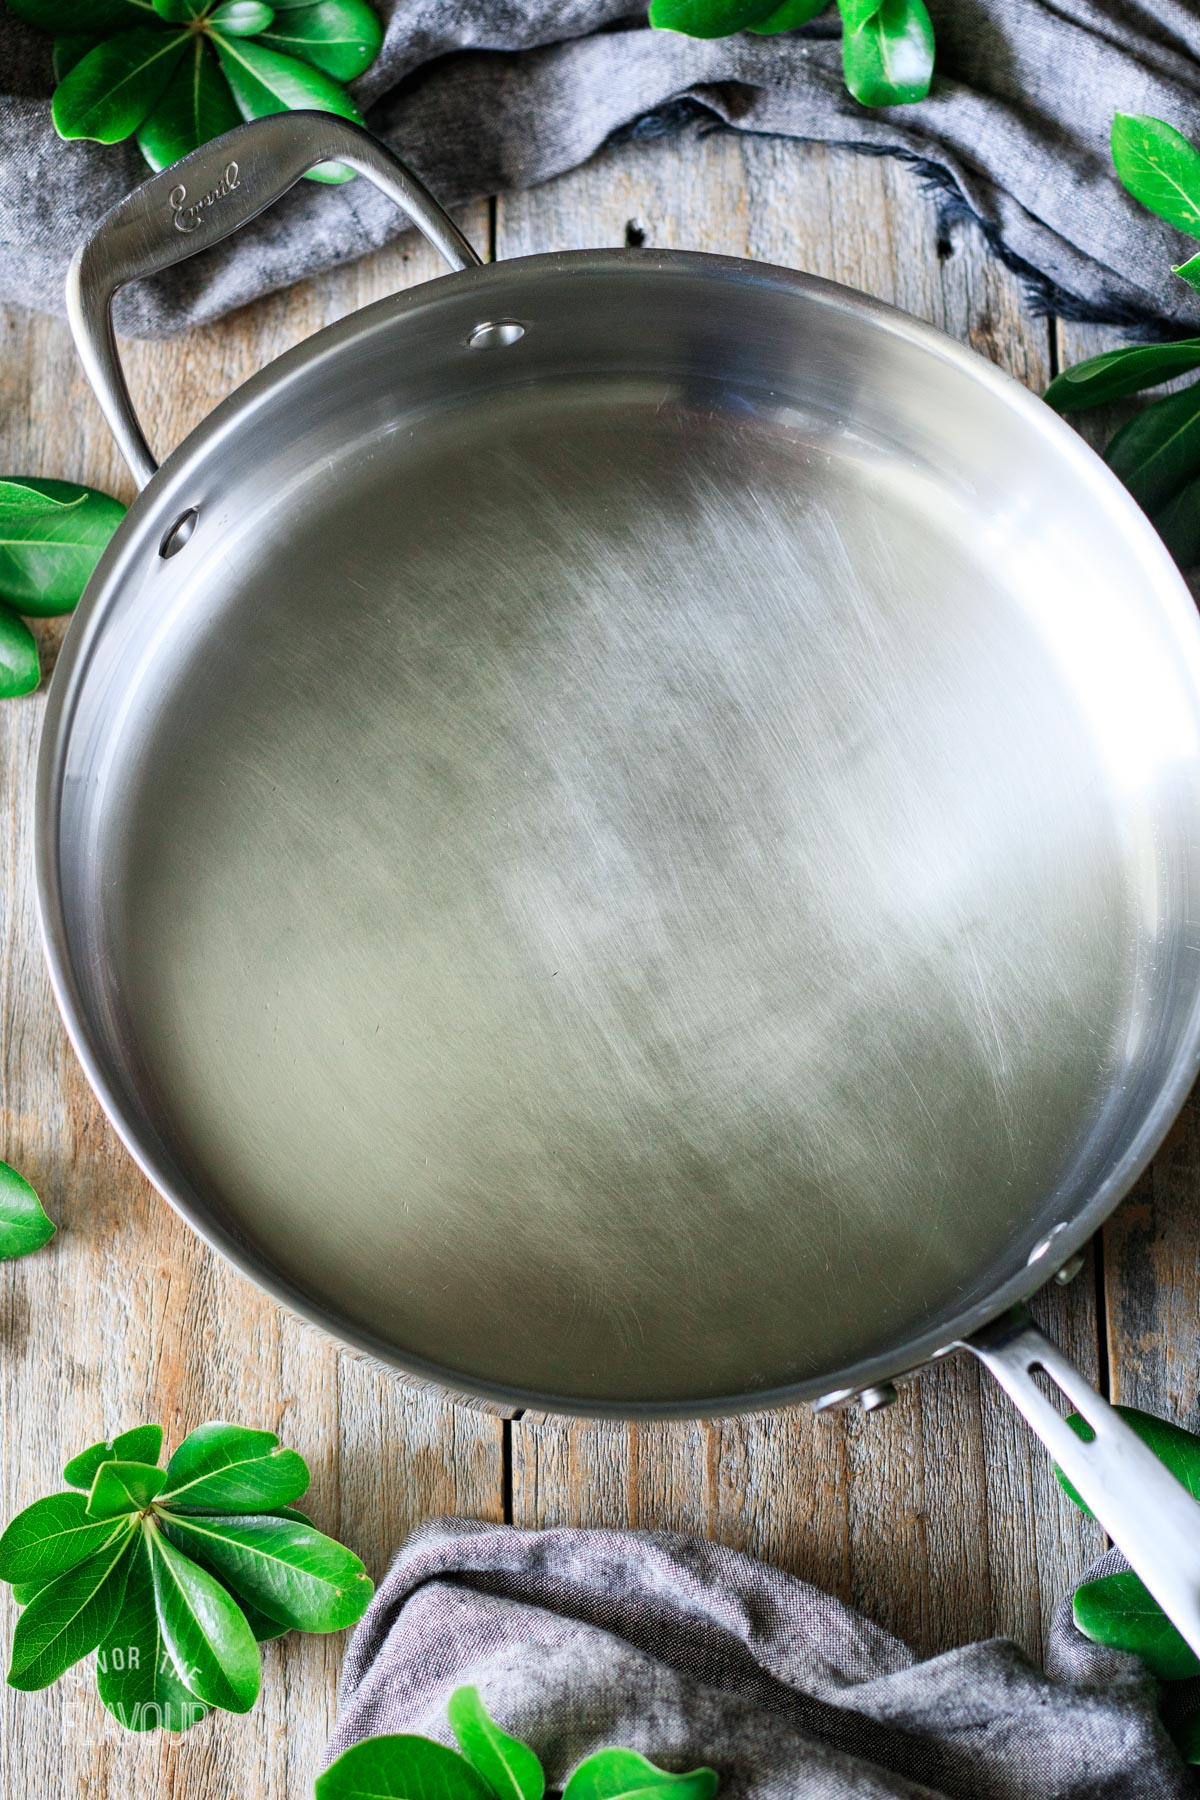 an empty stainless steel skillet